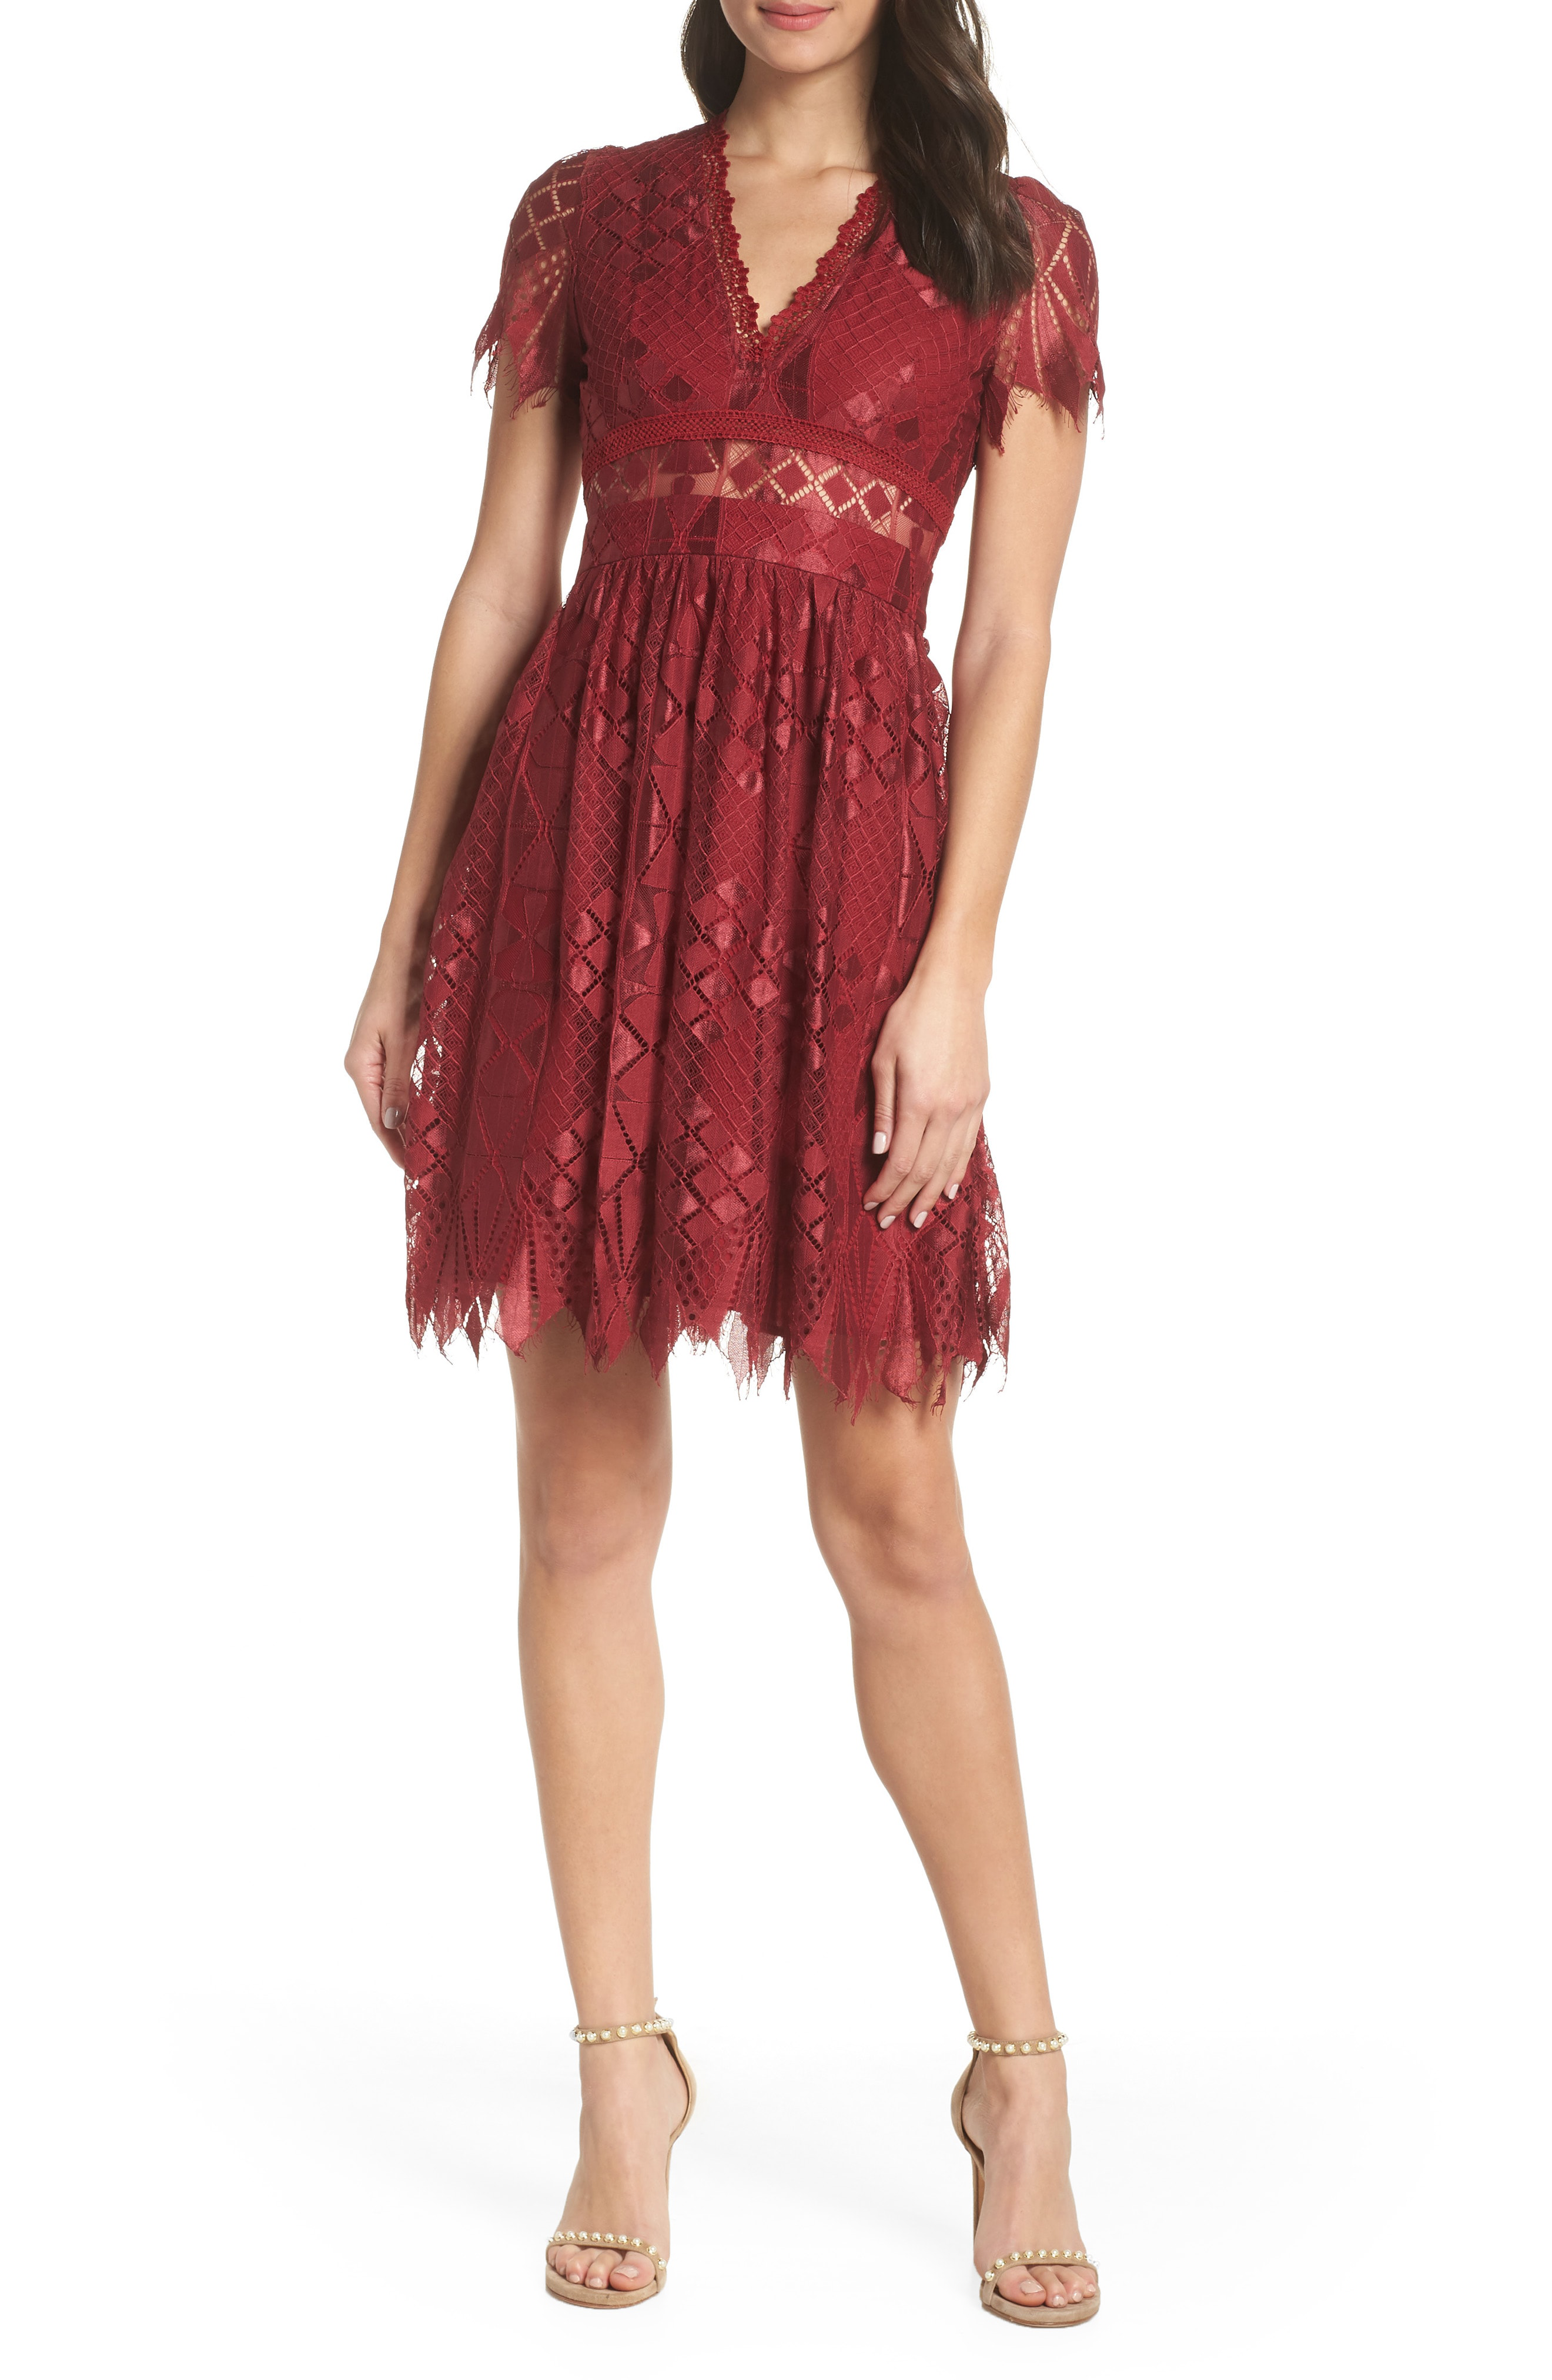 Bravo Zulu Lace Fit Flare Dress In Burgundy